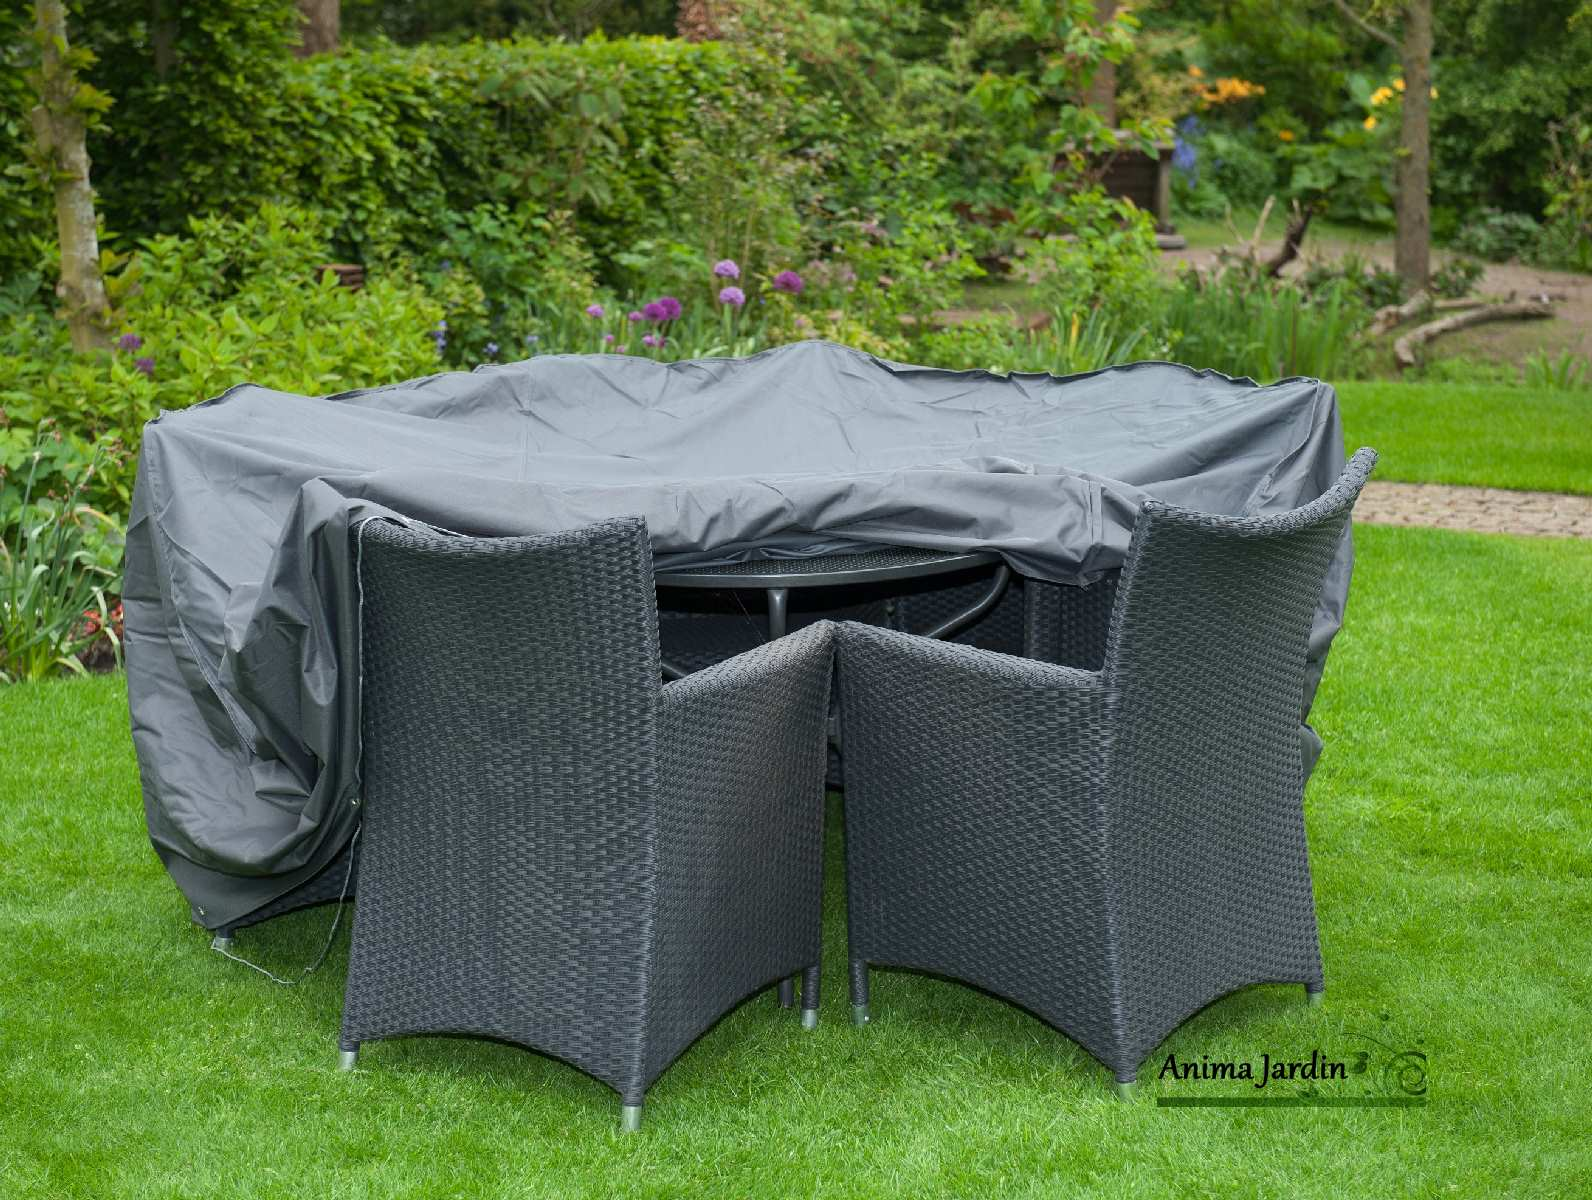 Housse de protection salon de jardin table ronde imperm able - Housse salon jardin ...